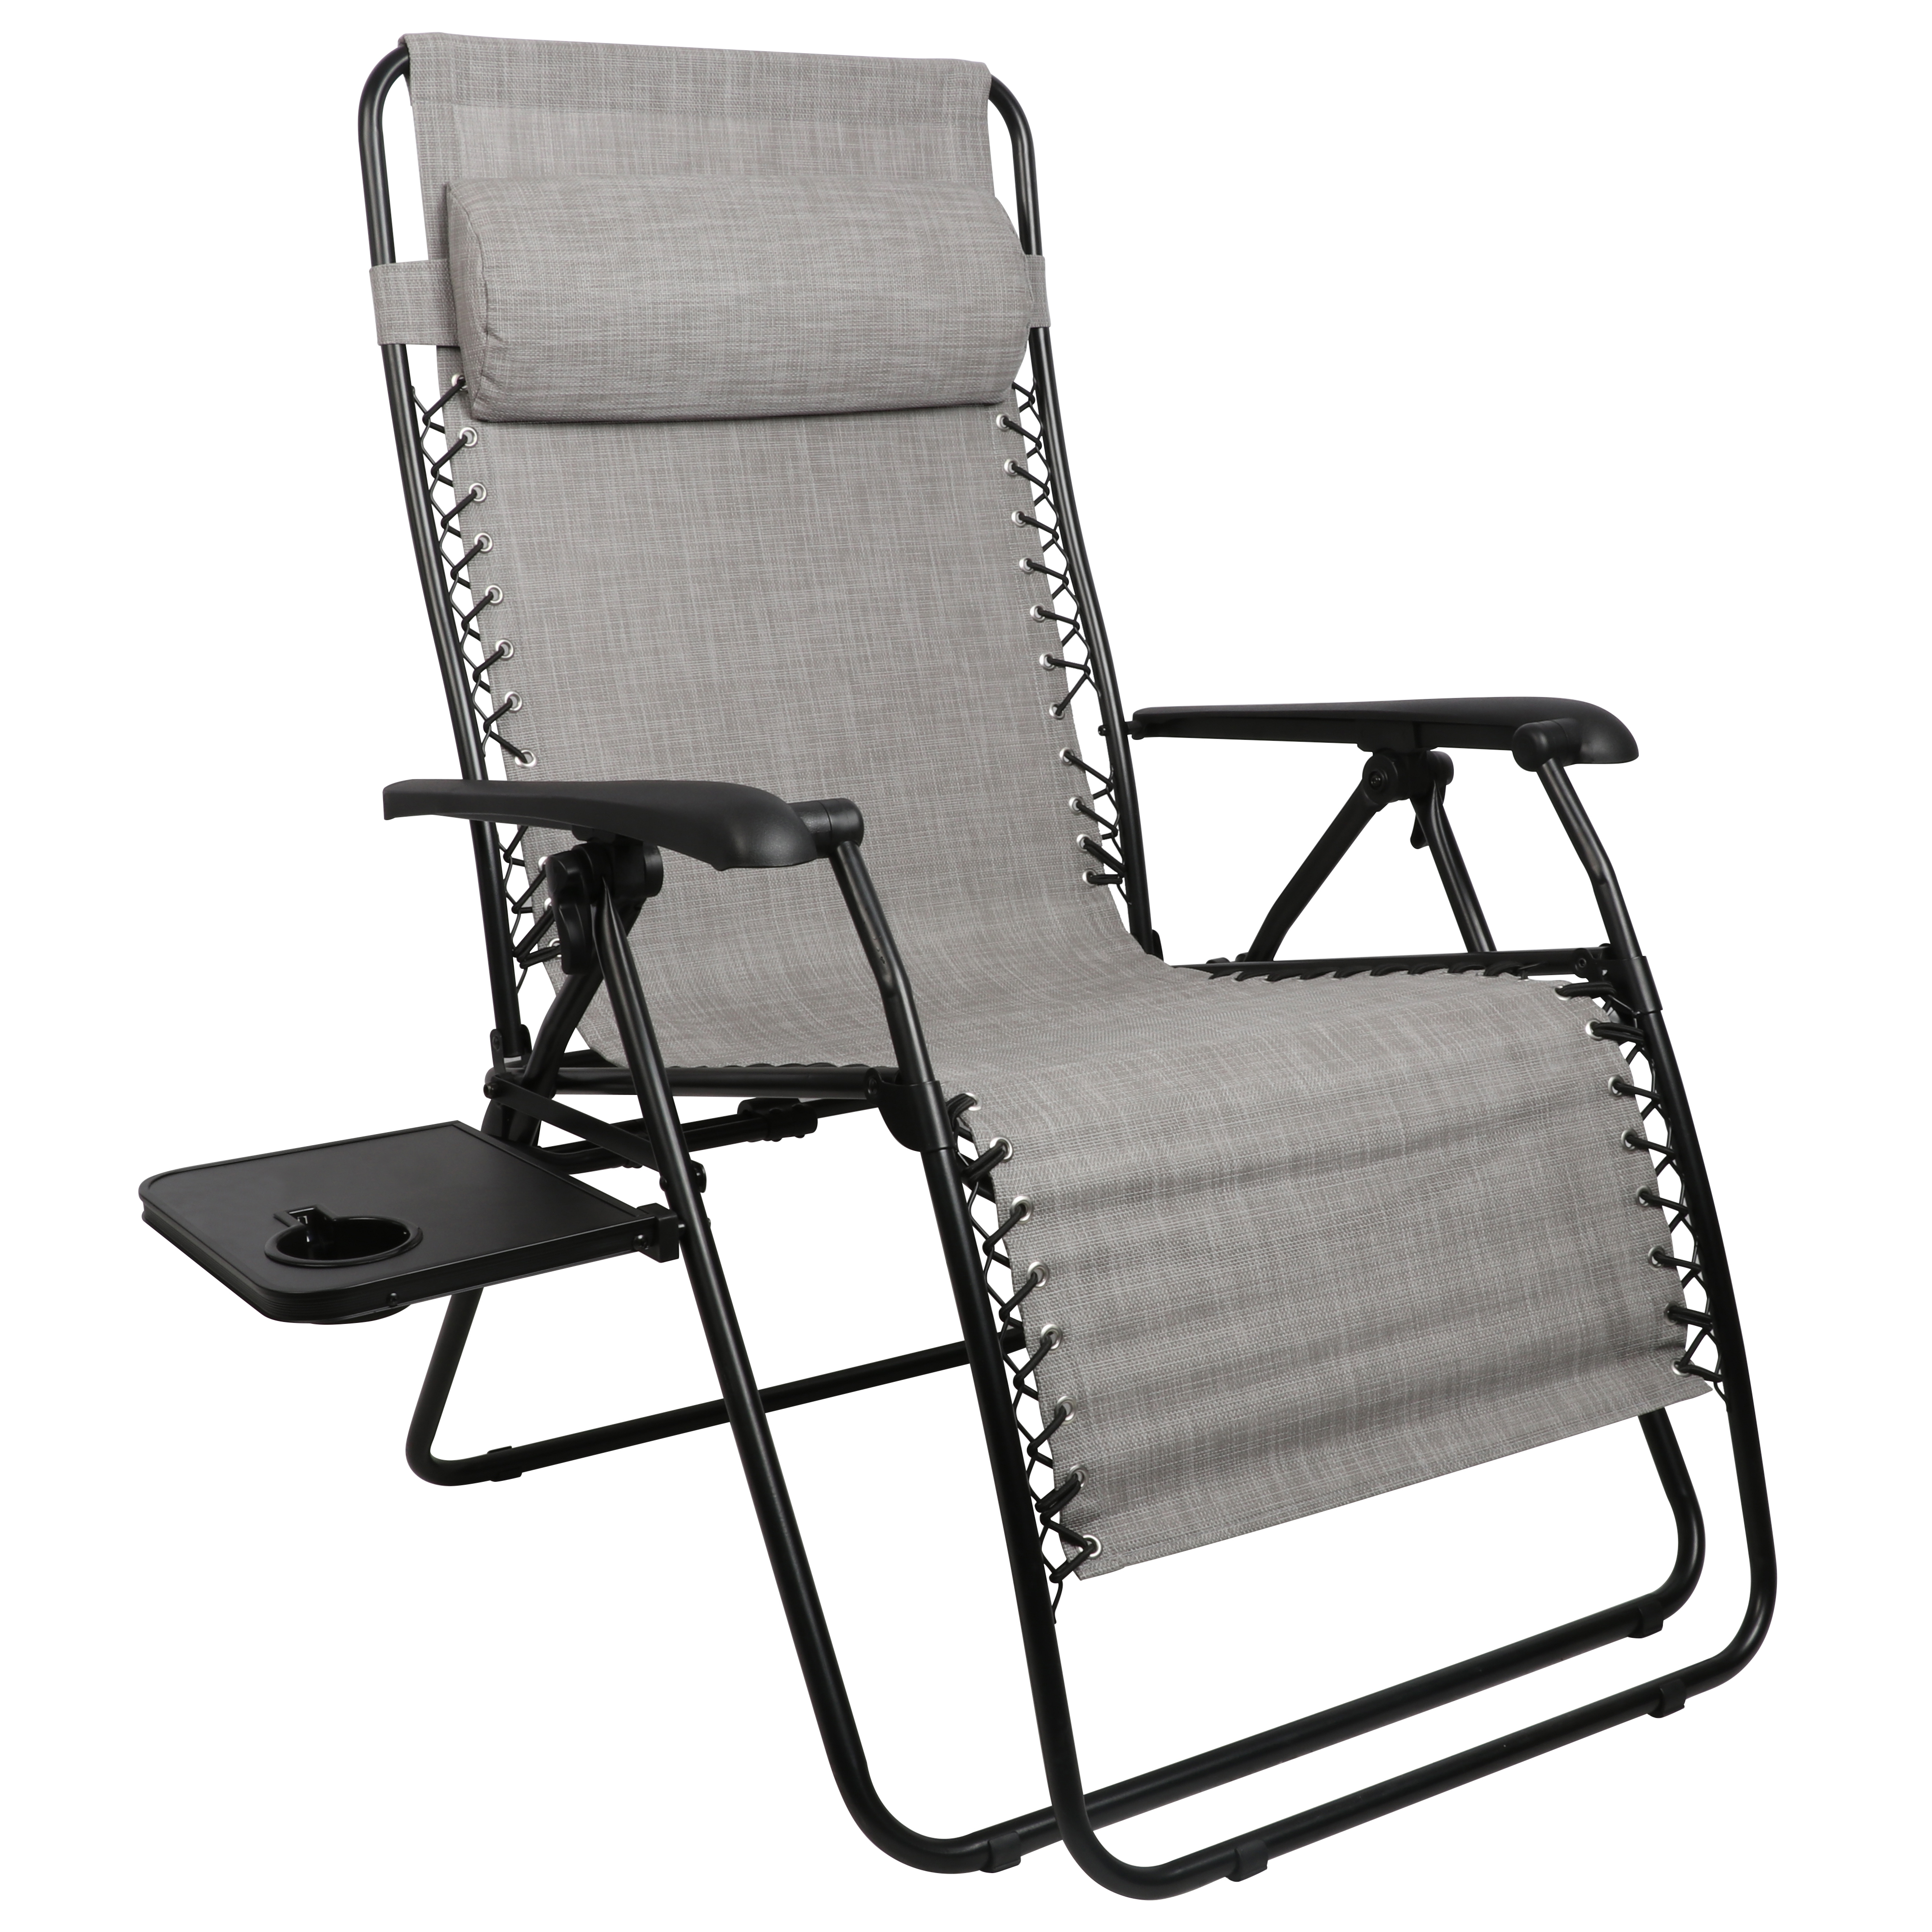 Gravity Lounge Chair Murdoch S Portal Xl Zero Gravity Lounge Chair With Side Table